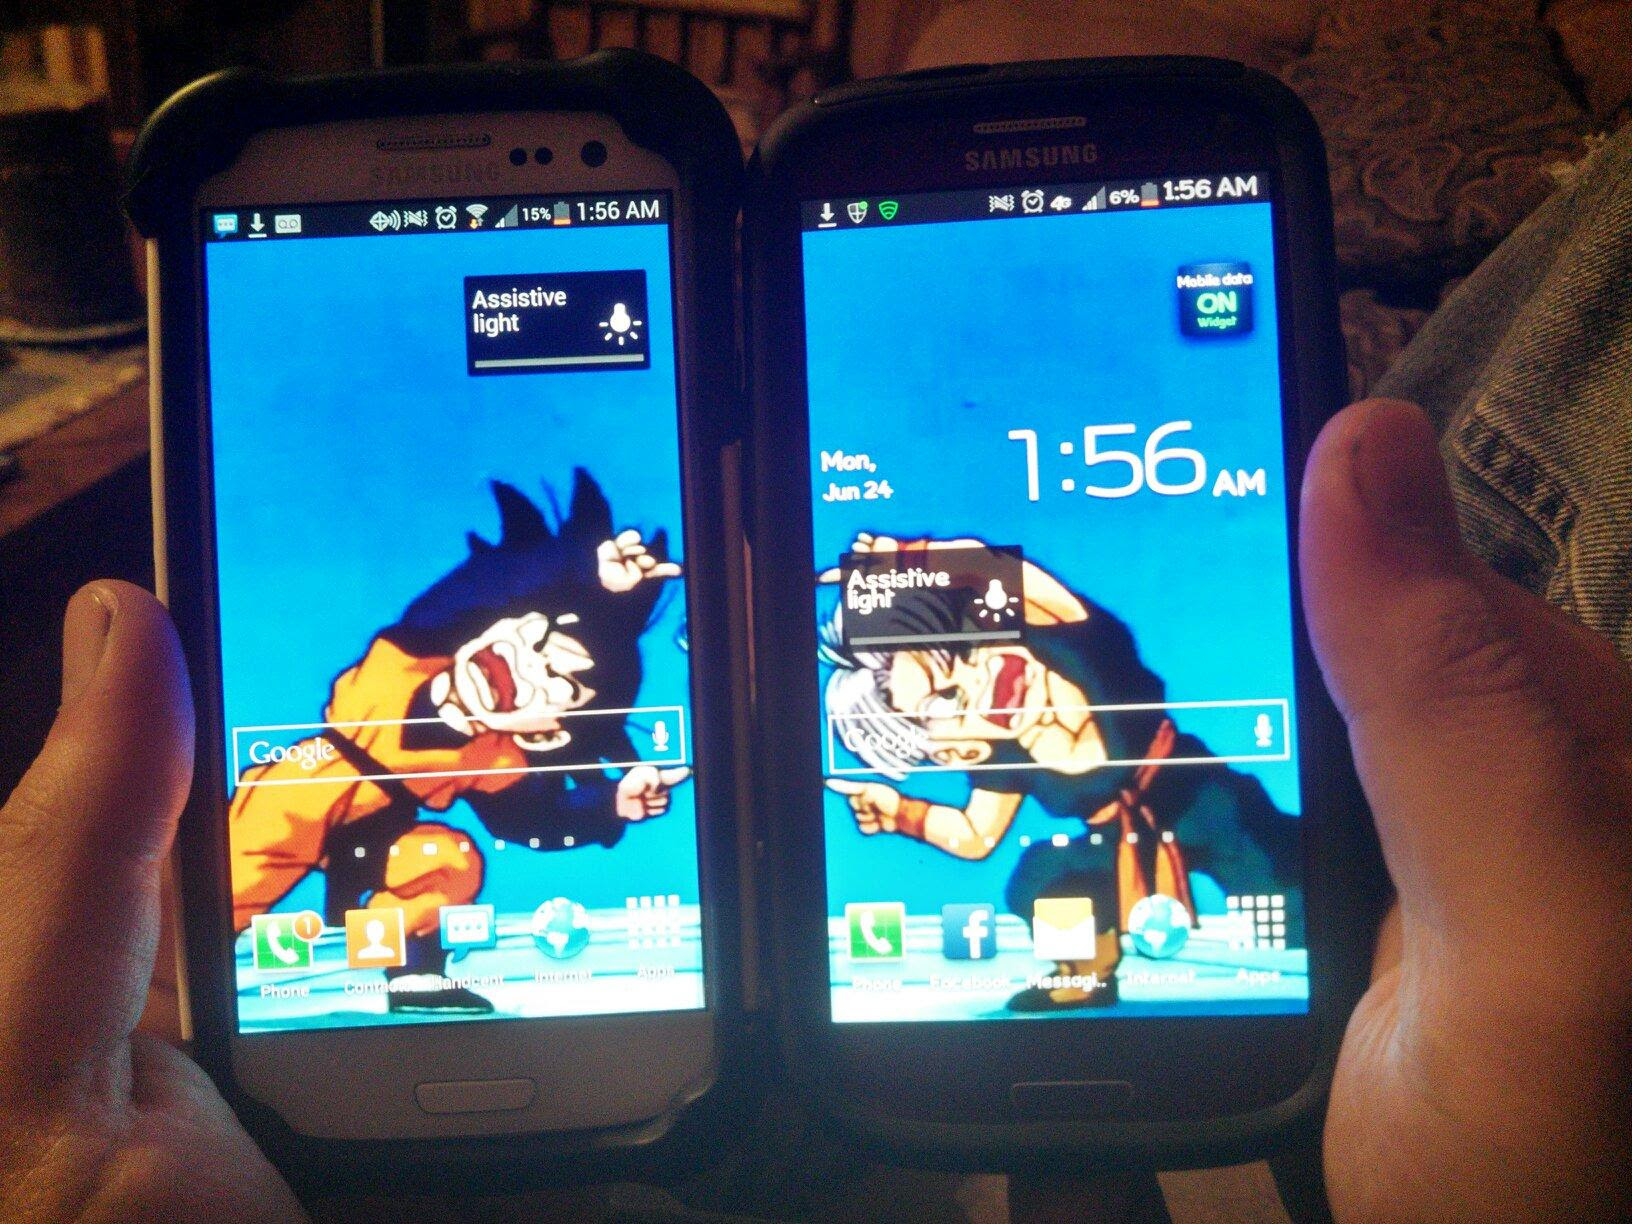 My Friend And I Have Corresponding Wallpapers On Our Phones Dbz